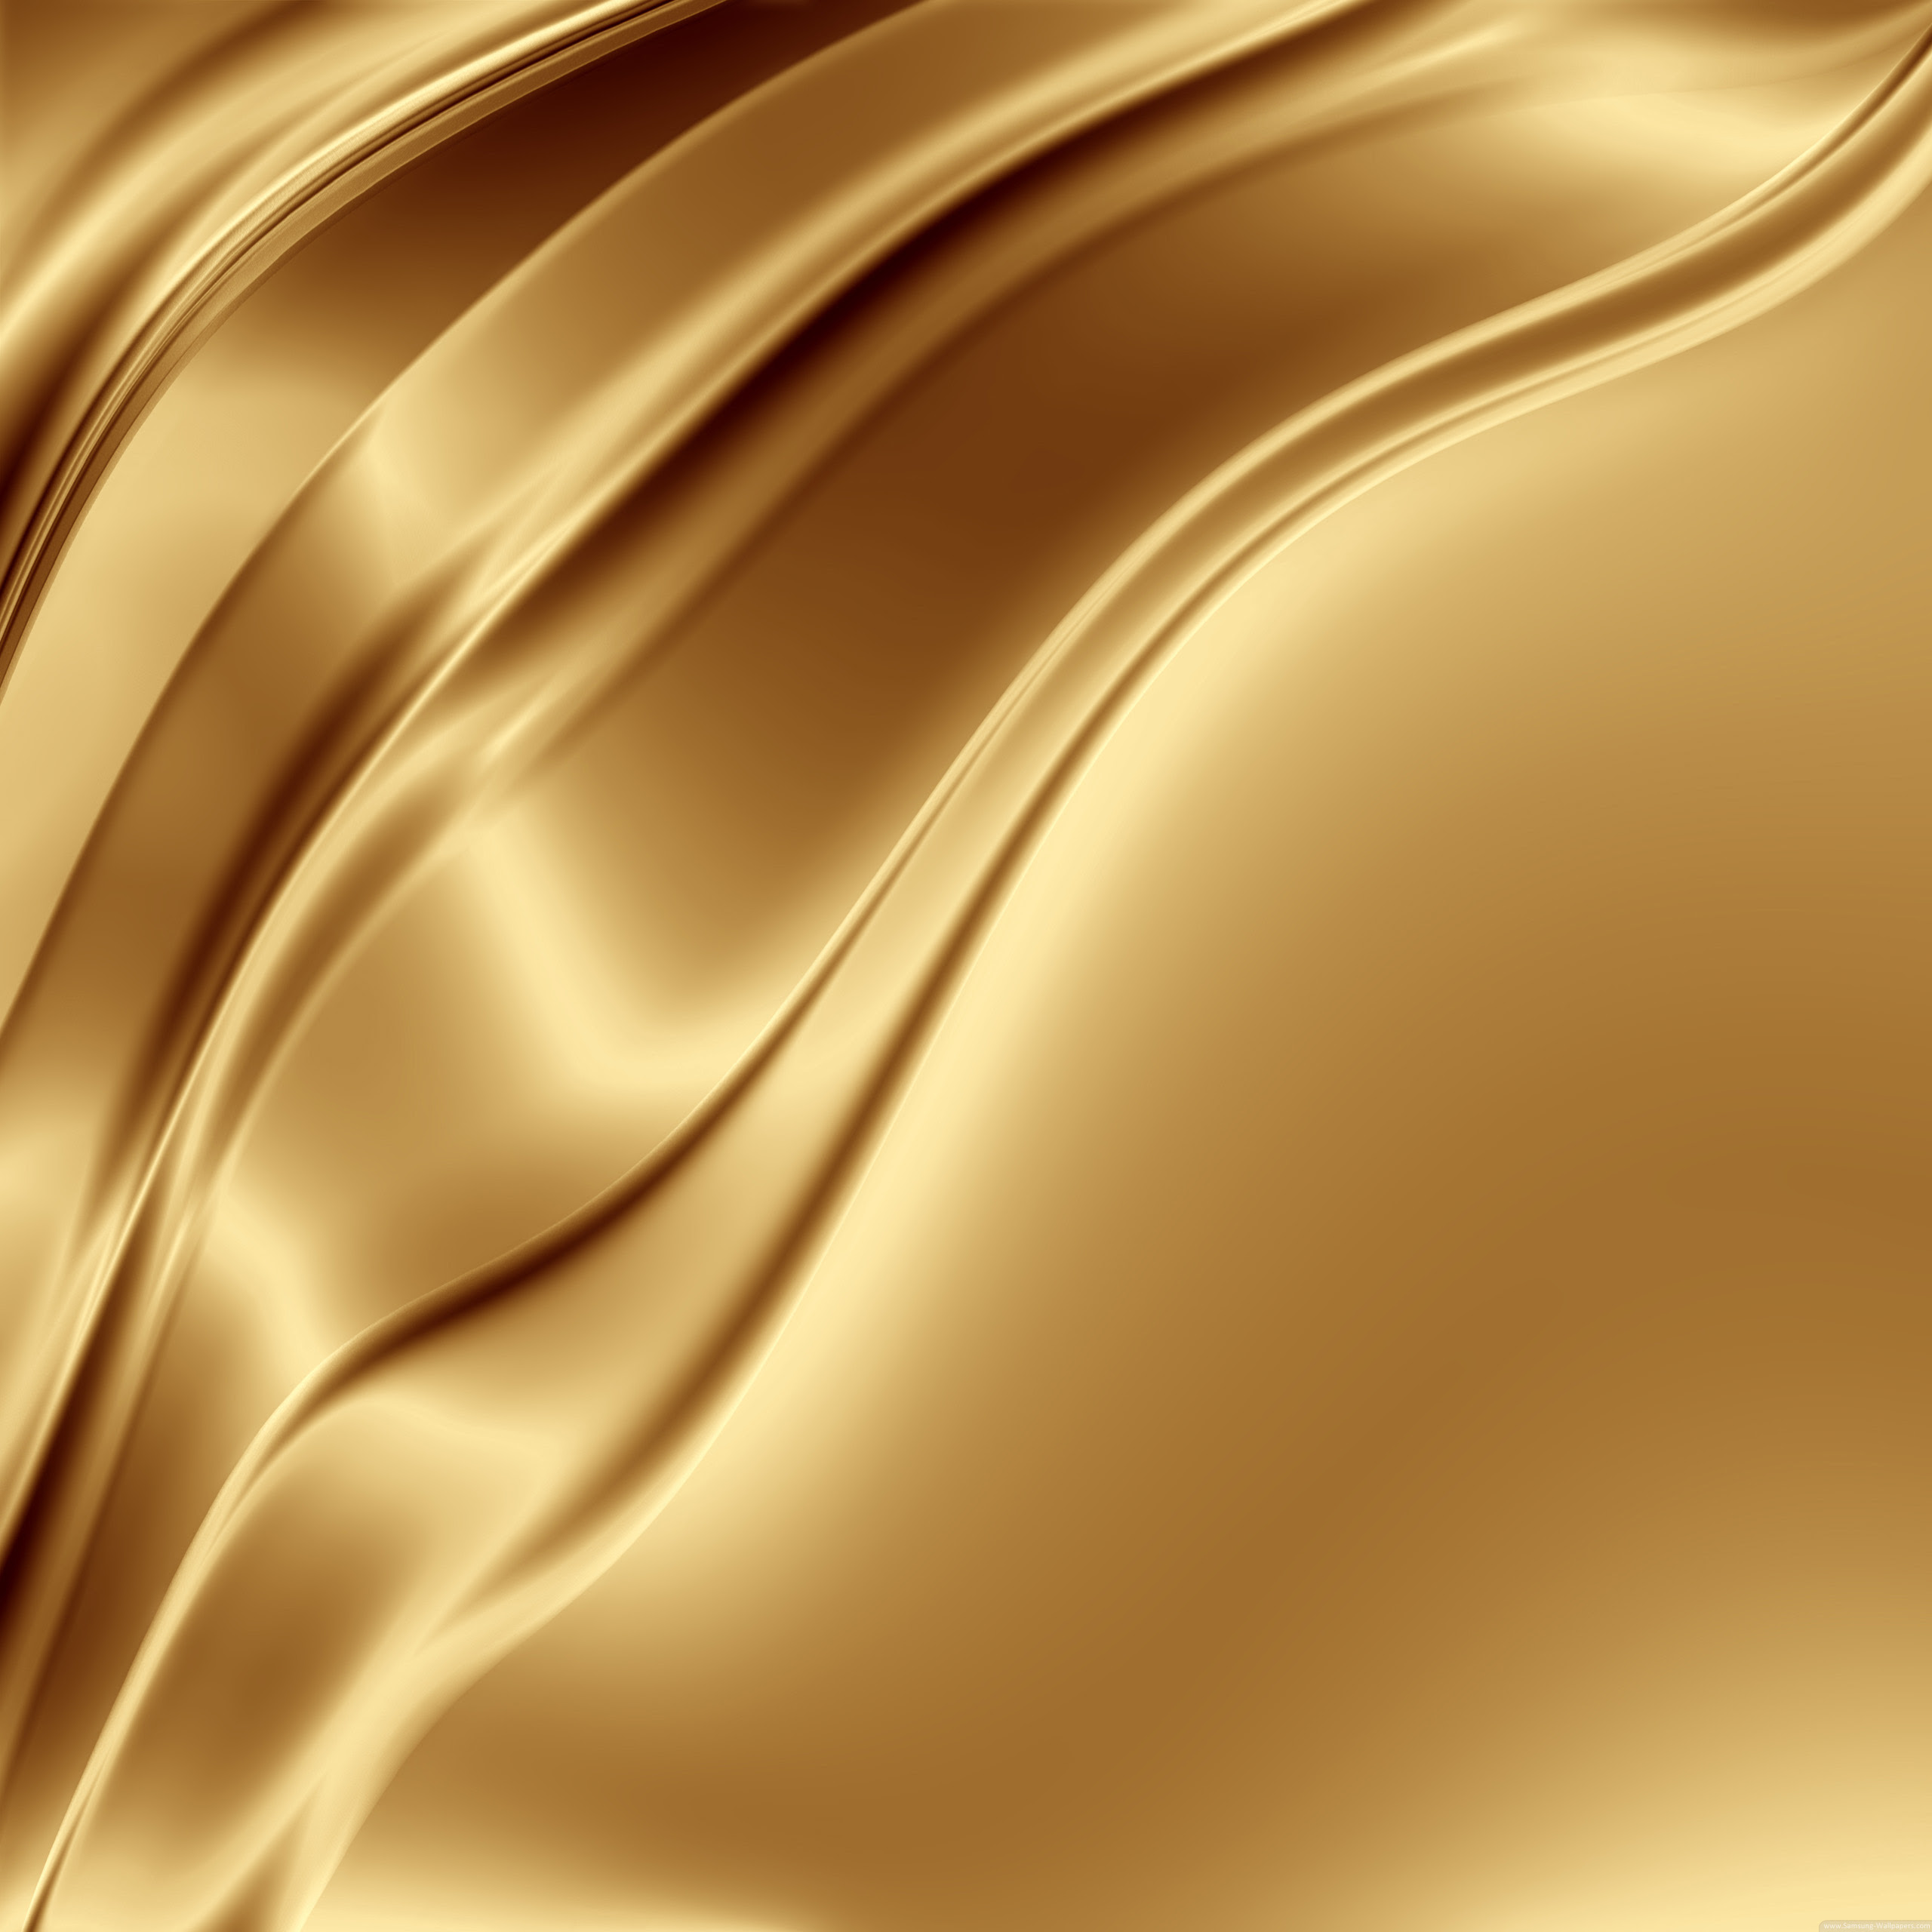 Golden Cool Wallpapers Full HD - Cool HD Wallpapers ...